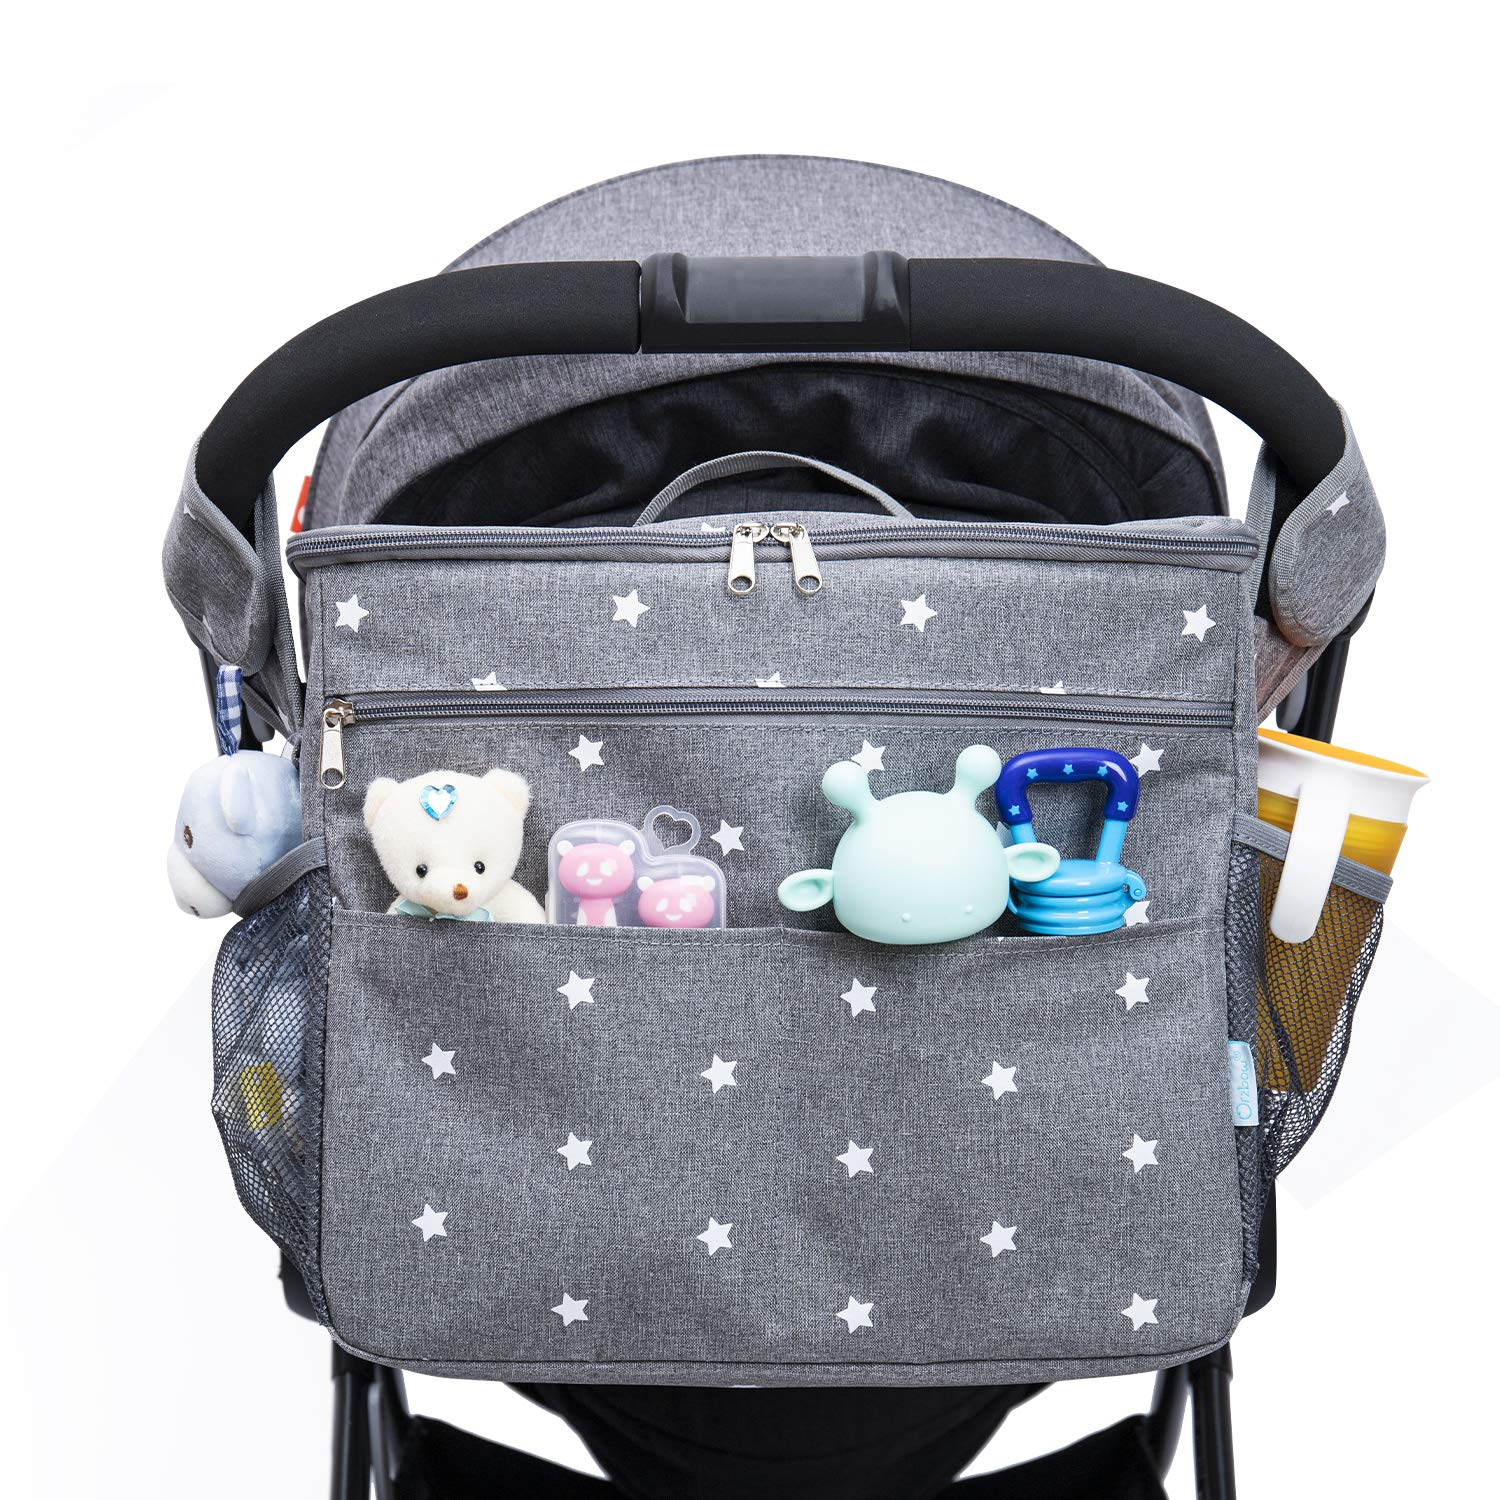 Orzbow Universal Parents Diaper Organizer Bag with Stroller Attachments. Large Strollers Insulated Baby Bag. 3 Ways to Carry - Shoulder, Messenger Bag, Backpack. (Light Grey)